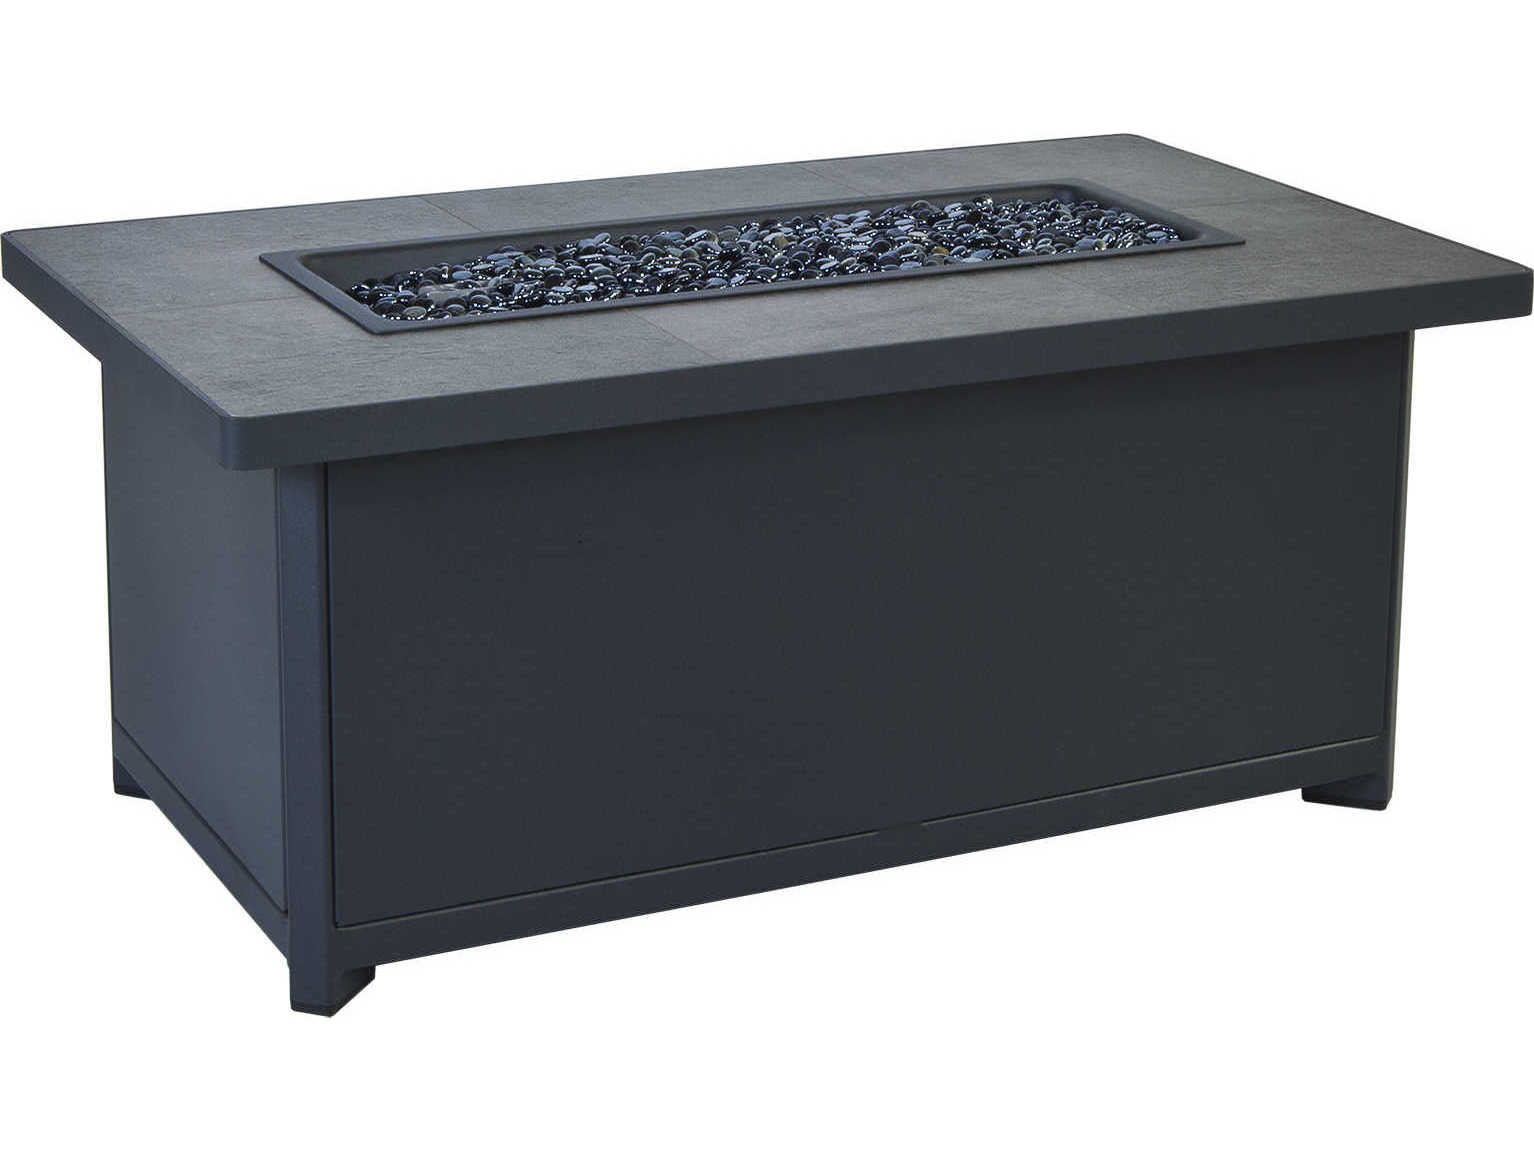 Ow Lee Gios Aluminum Firepit Lounge Set Giosfrpitlngset